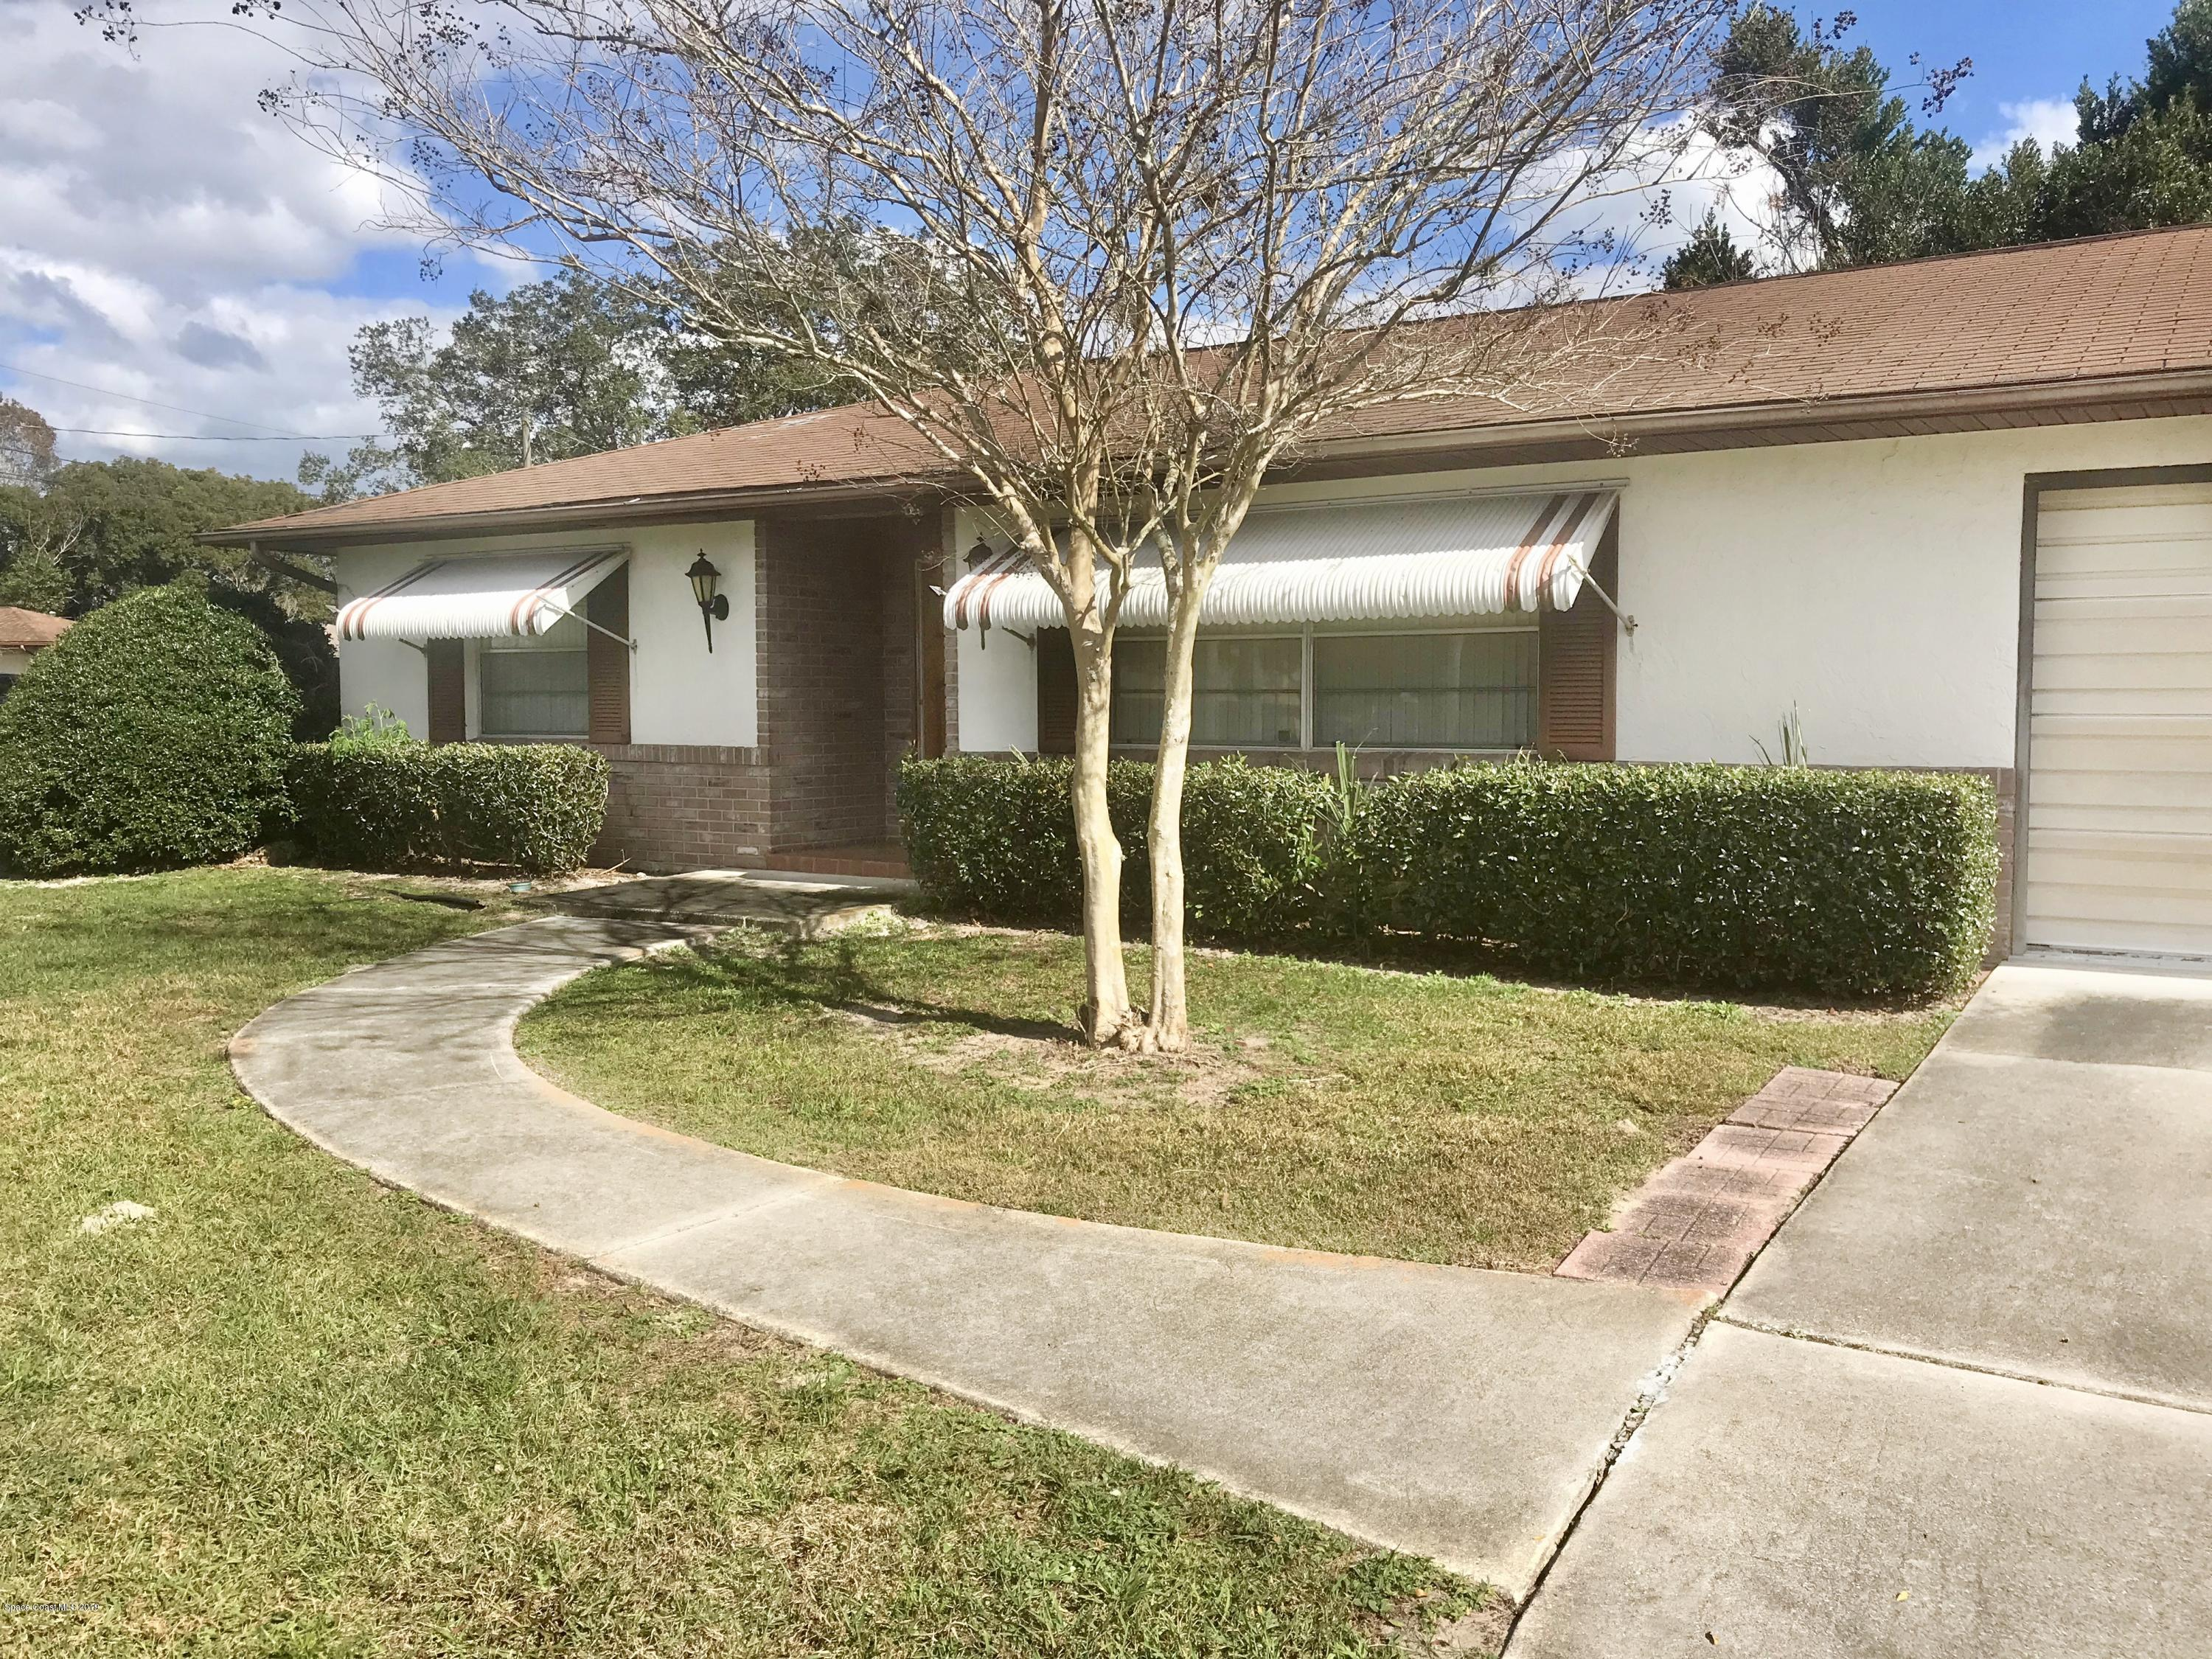 House for Sale at 1115 E Lombardy 1115 E Lombardy Deltona, Florida 32725 United States